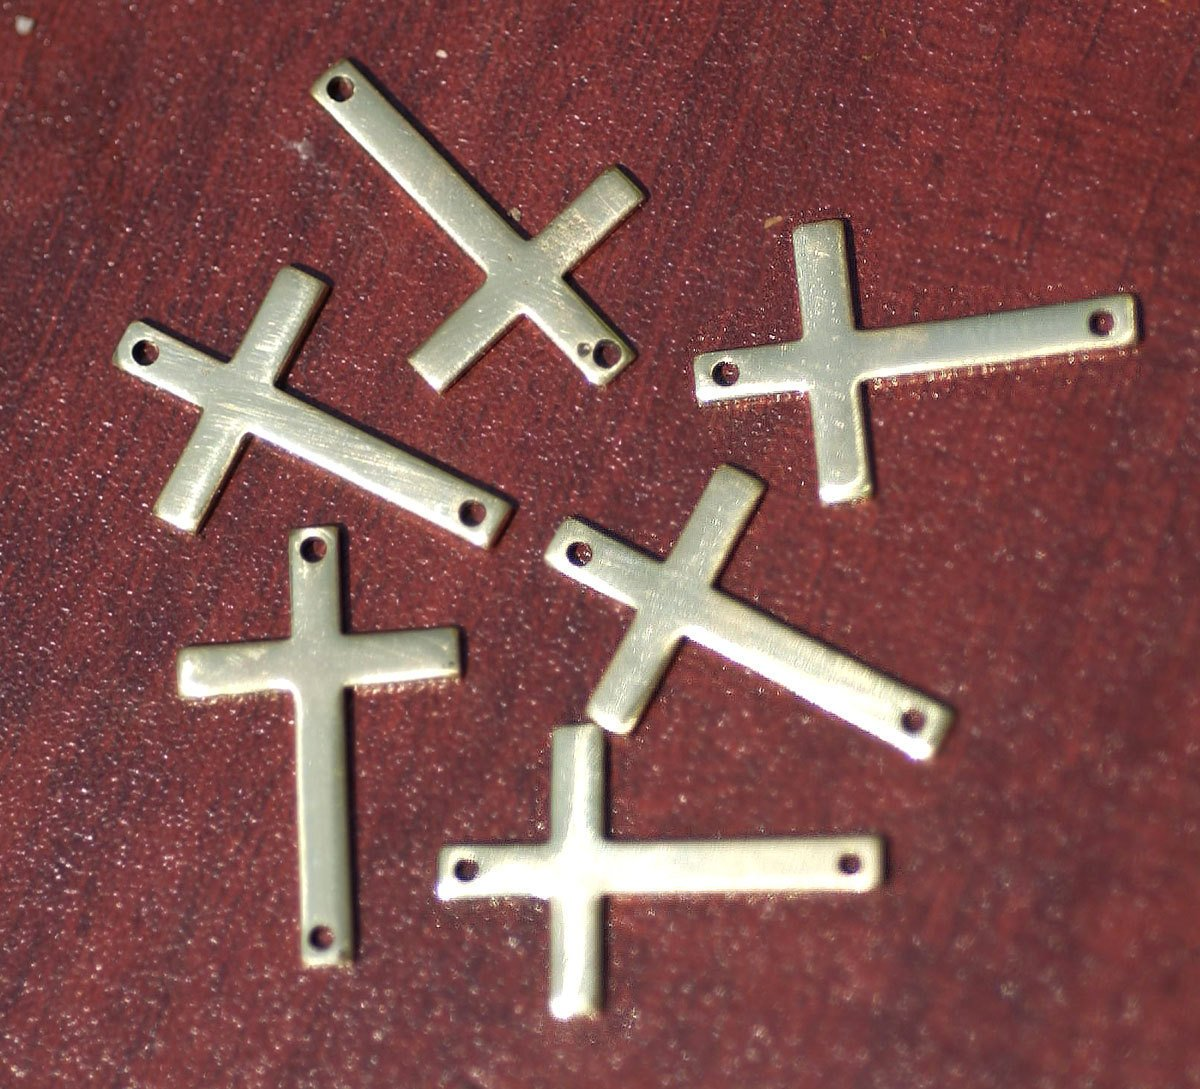 Brass or Bronze 21mm x 14mm 20g Blank Classic Religous Cross with hole Blanks Cutout for Enameling Stamping Texturing - 6 pieces